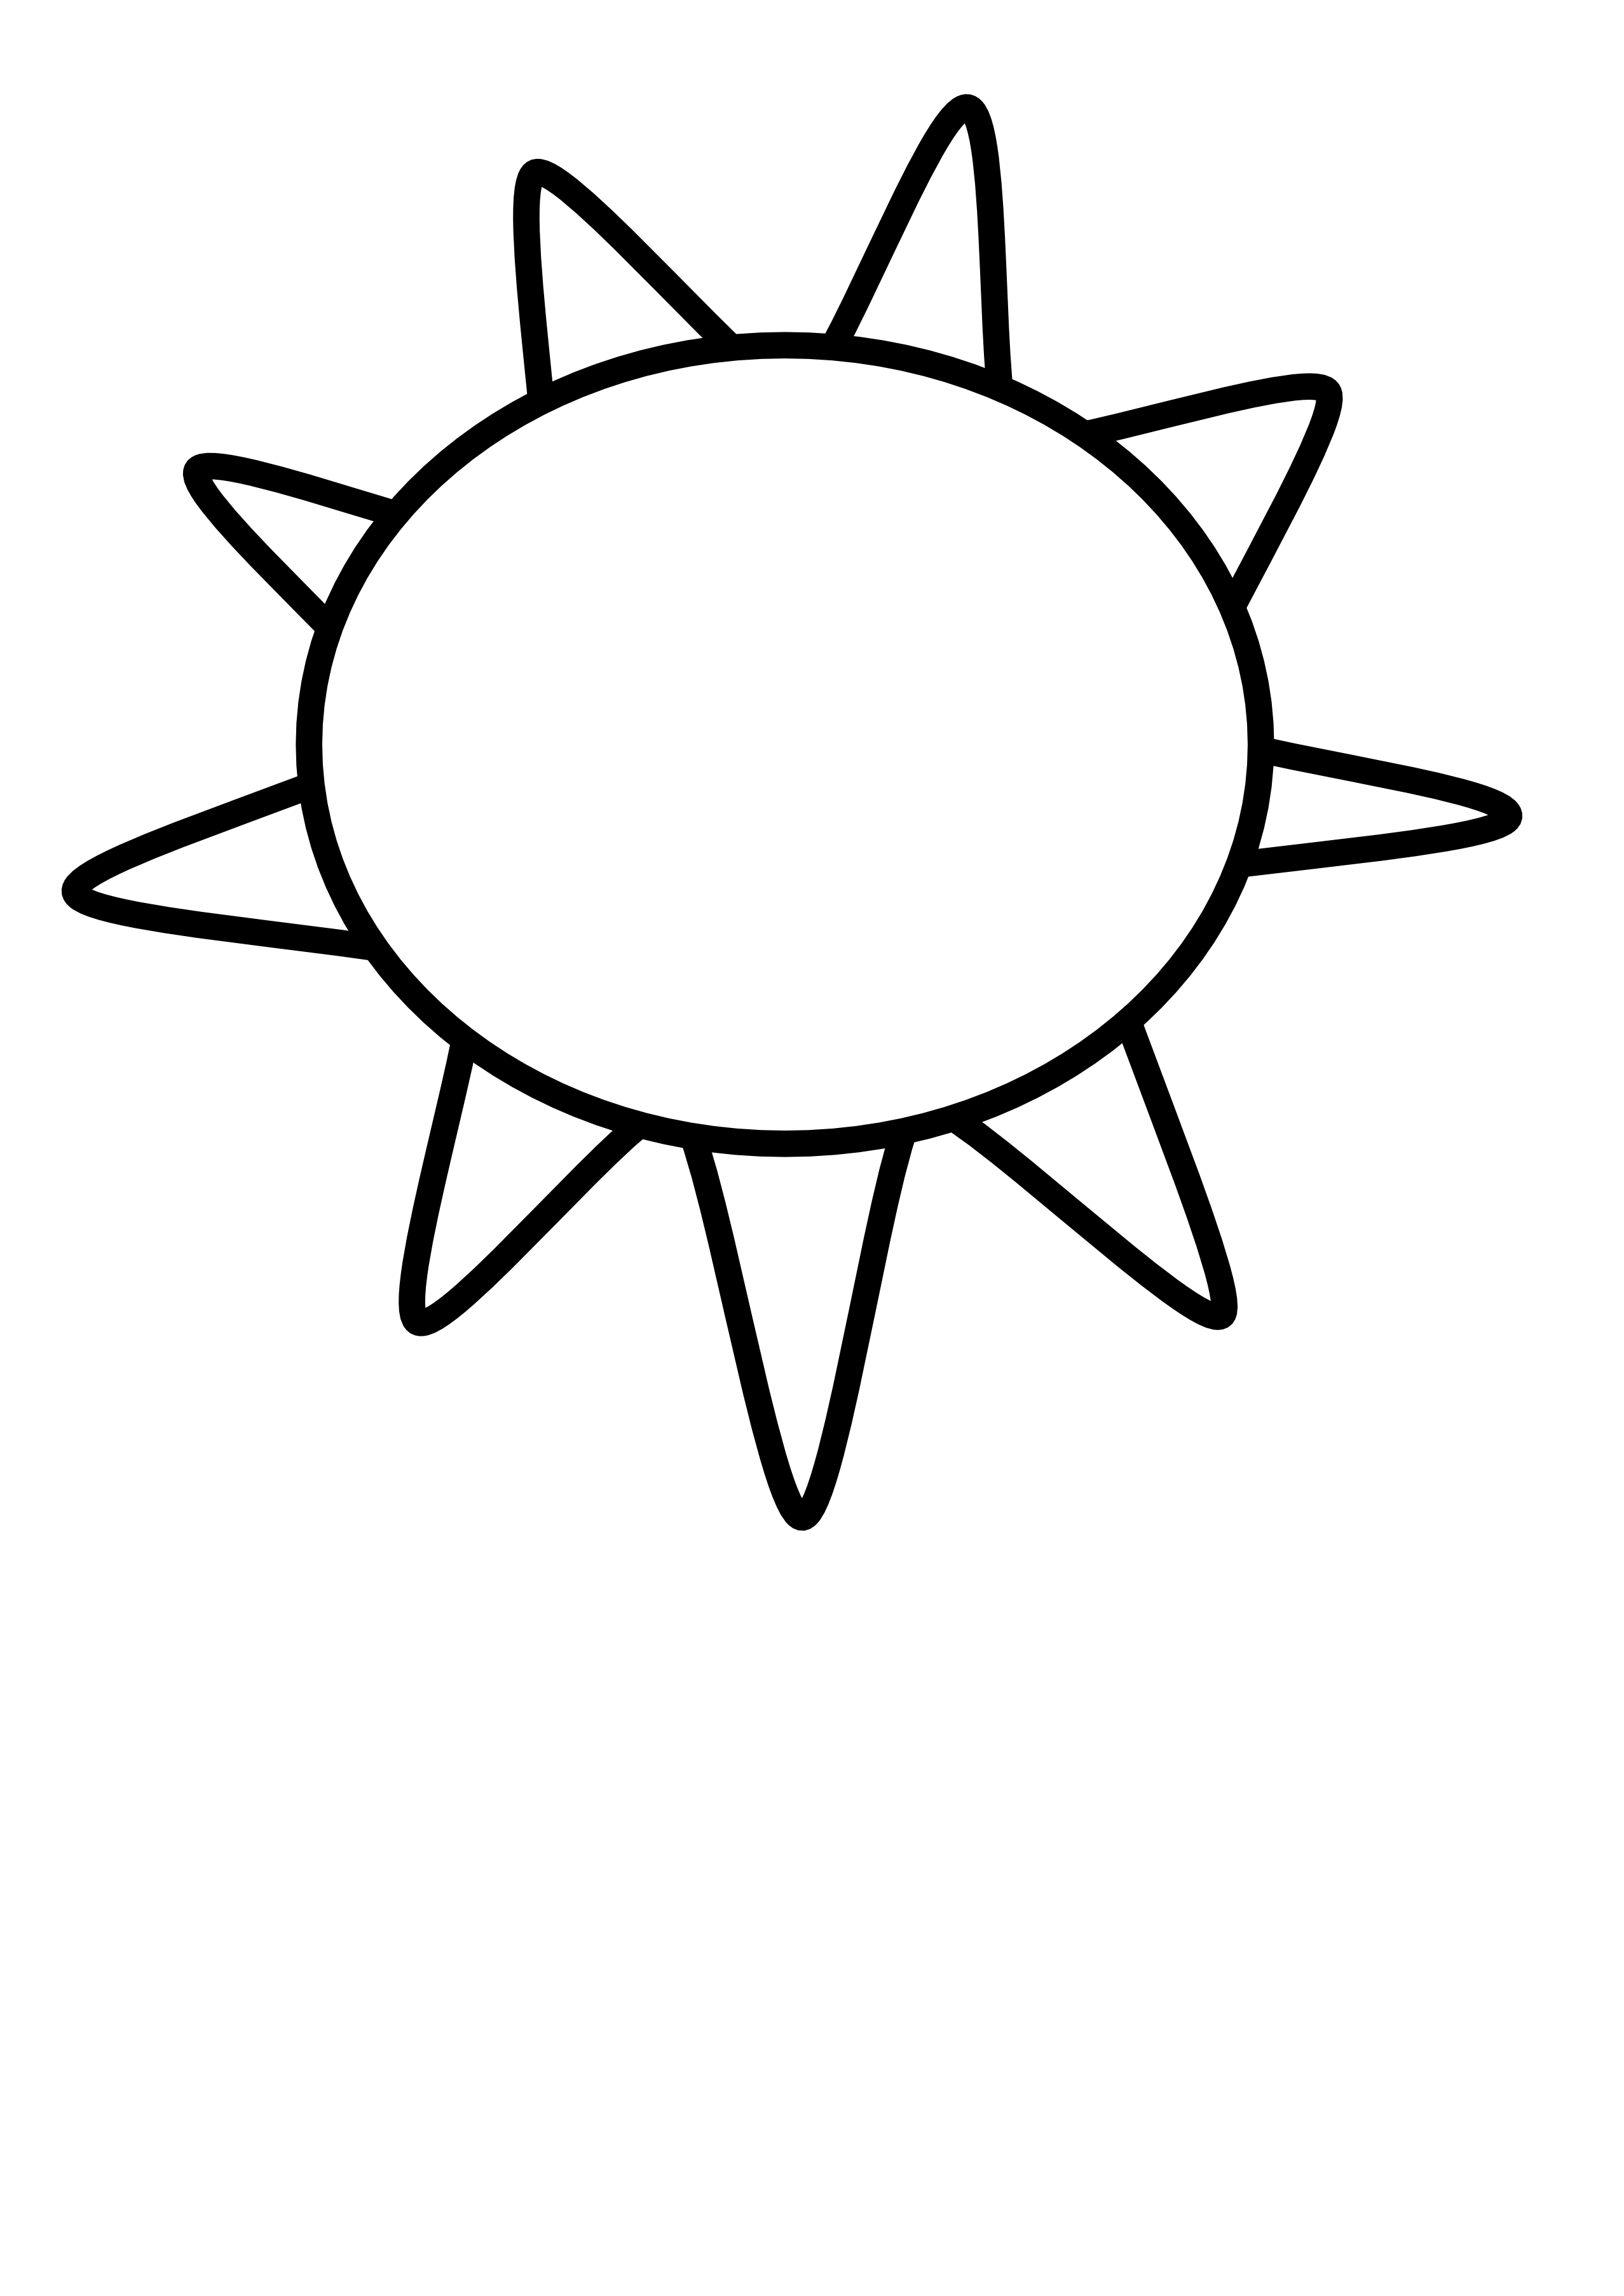 Sunlight drawing half sun. Clipart black and white